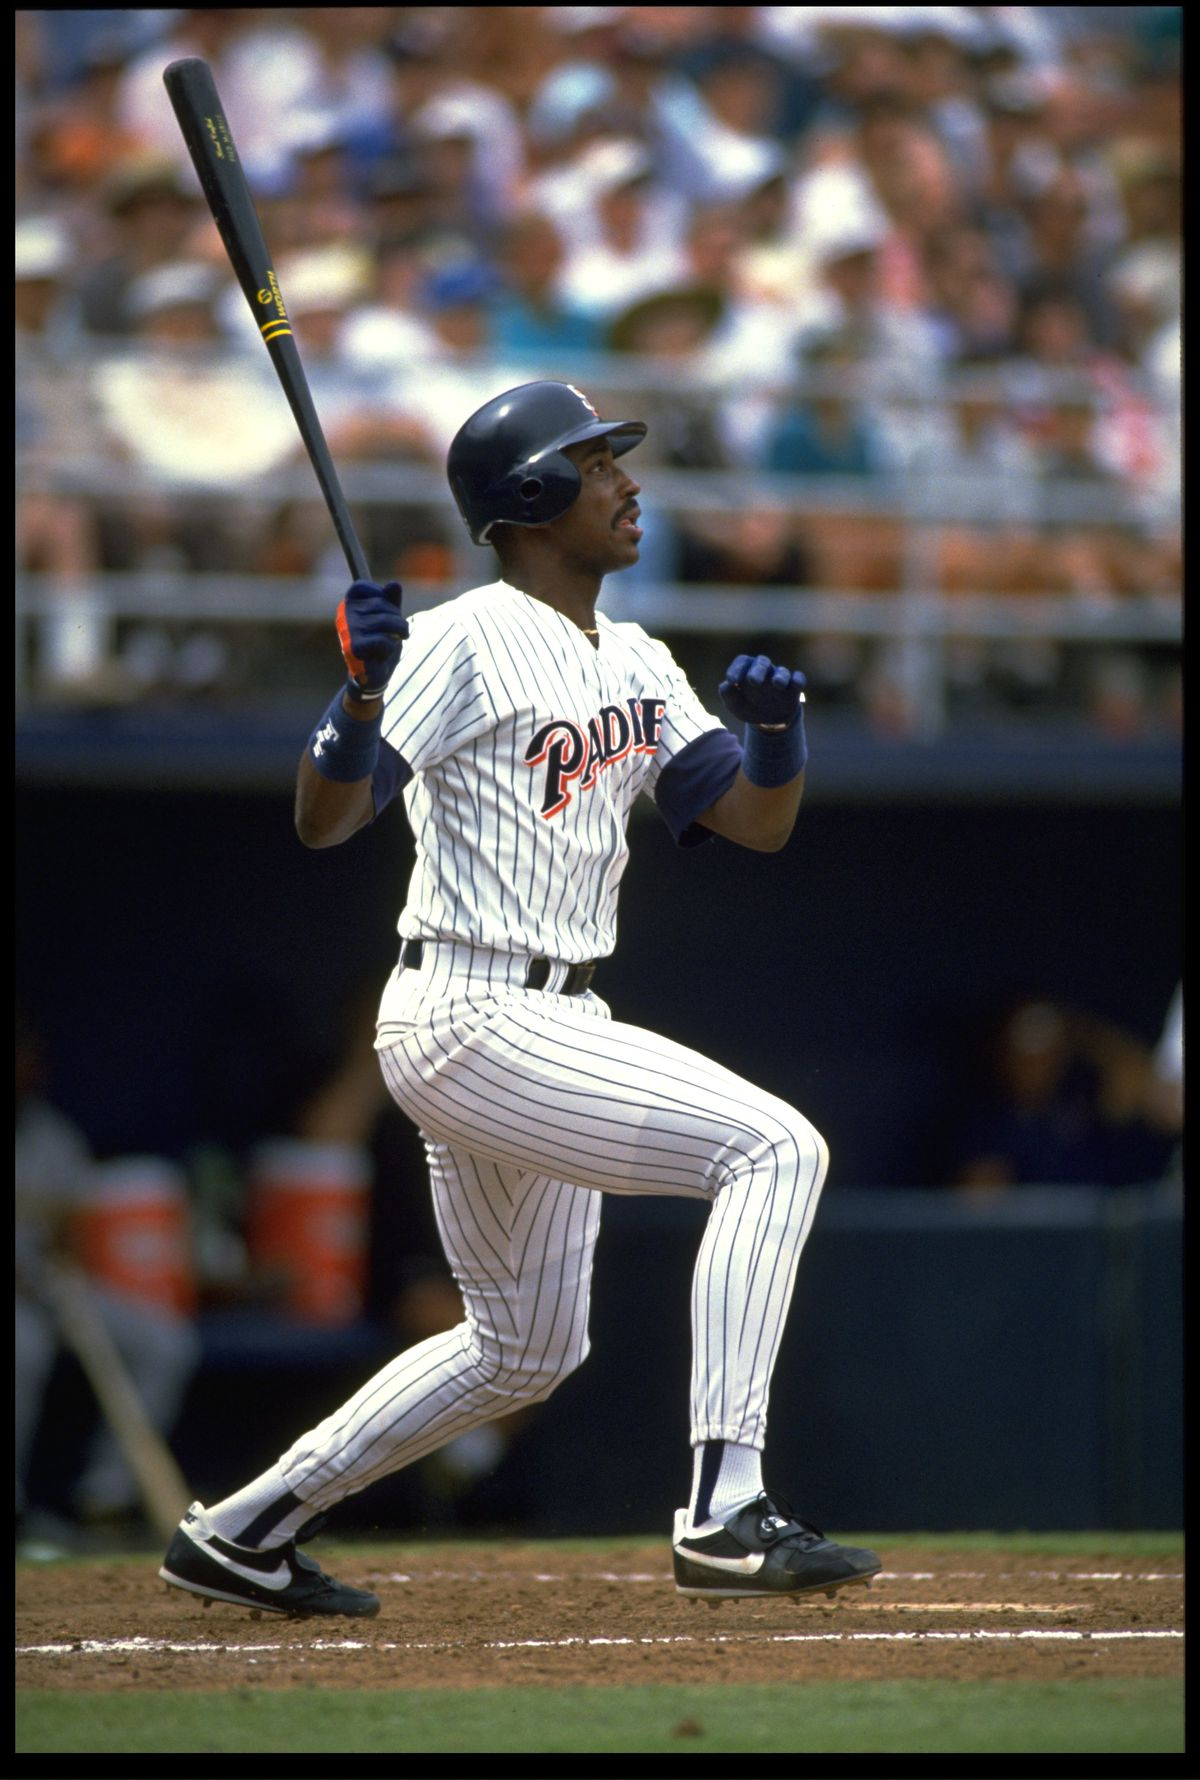 McGriff in a Padres Uni